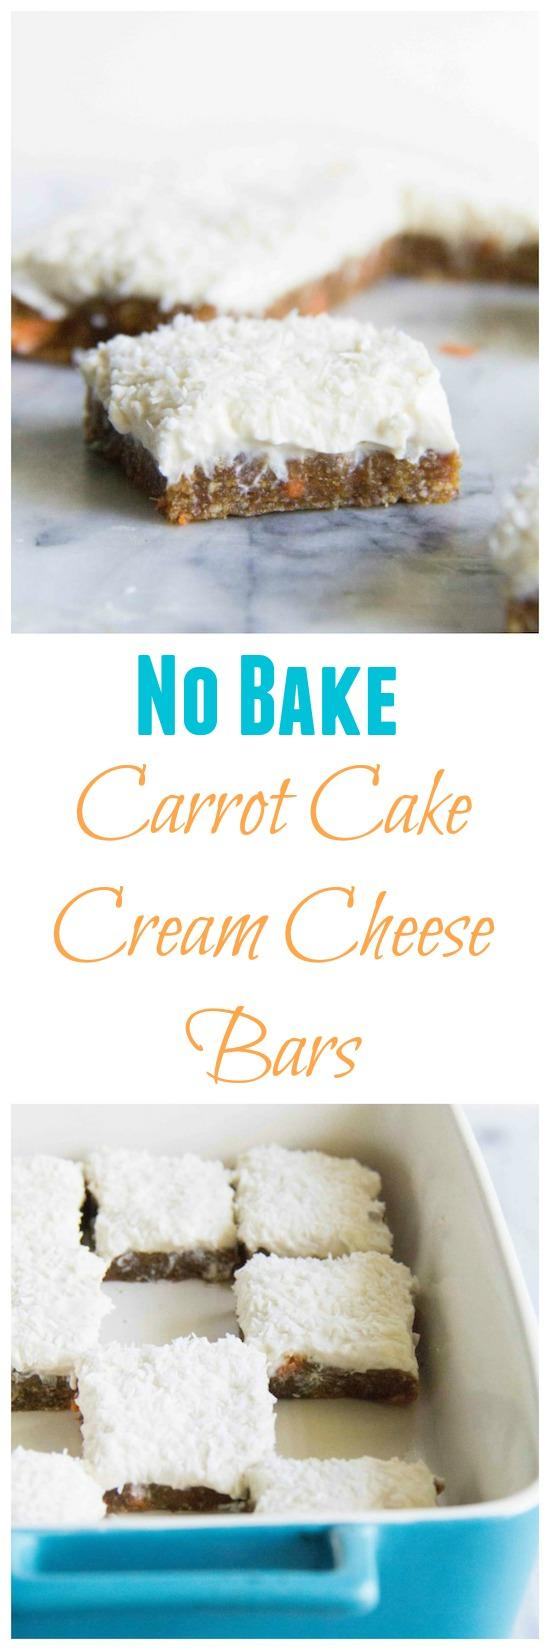 These No Bake Carrot Cake Cream Cheese Bars are the perfect spring dessert!